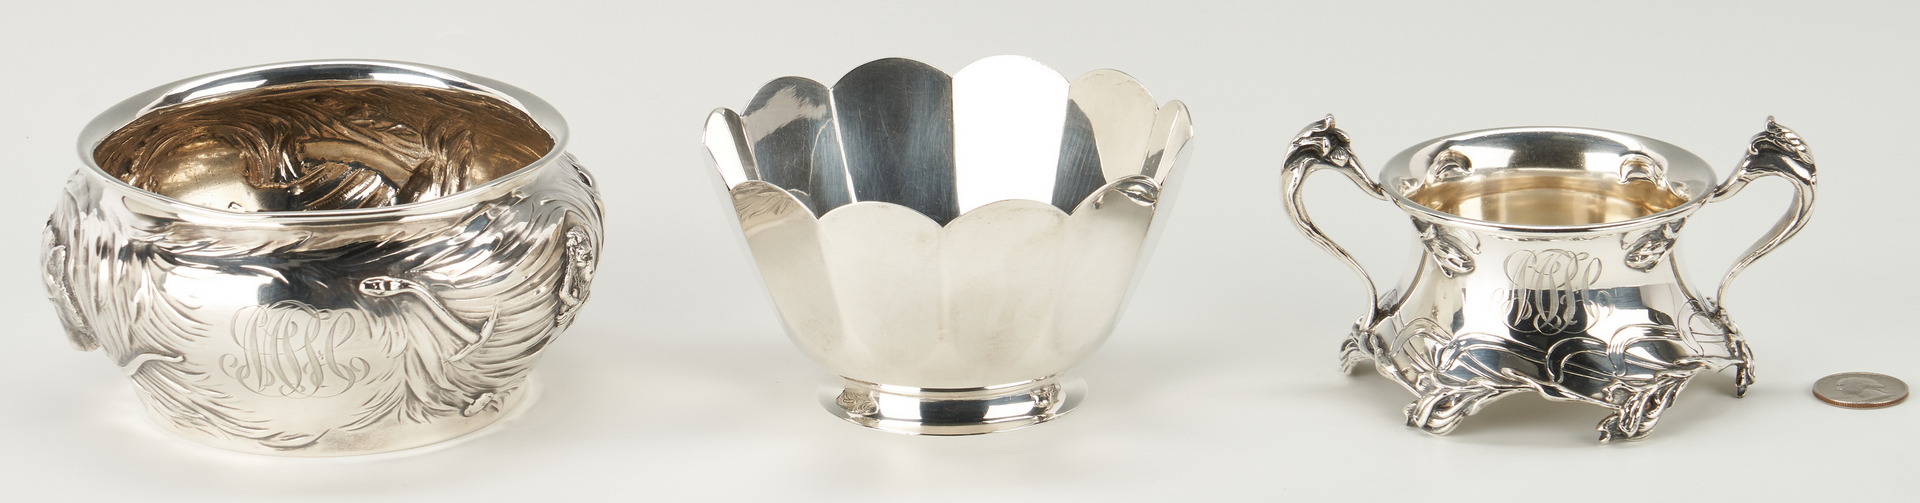 Lot 298: 3 Sterling Bowls, incl. Tiffany, Animals